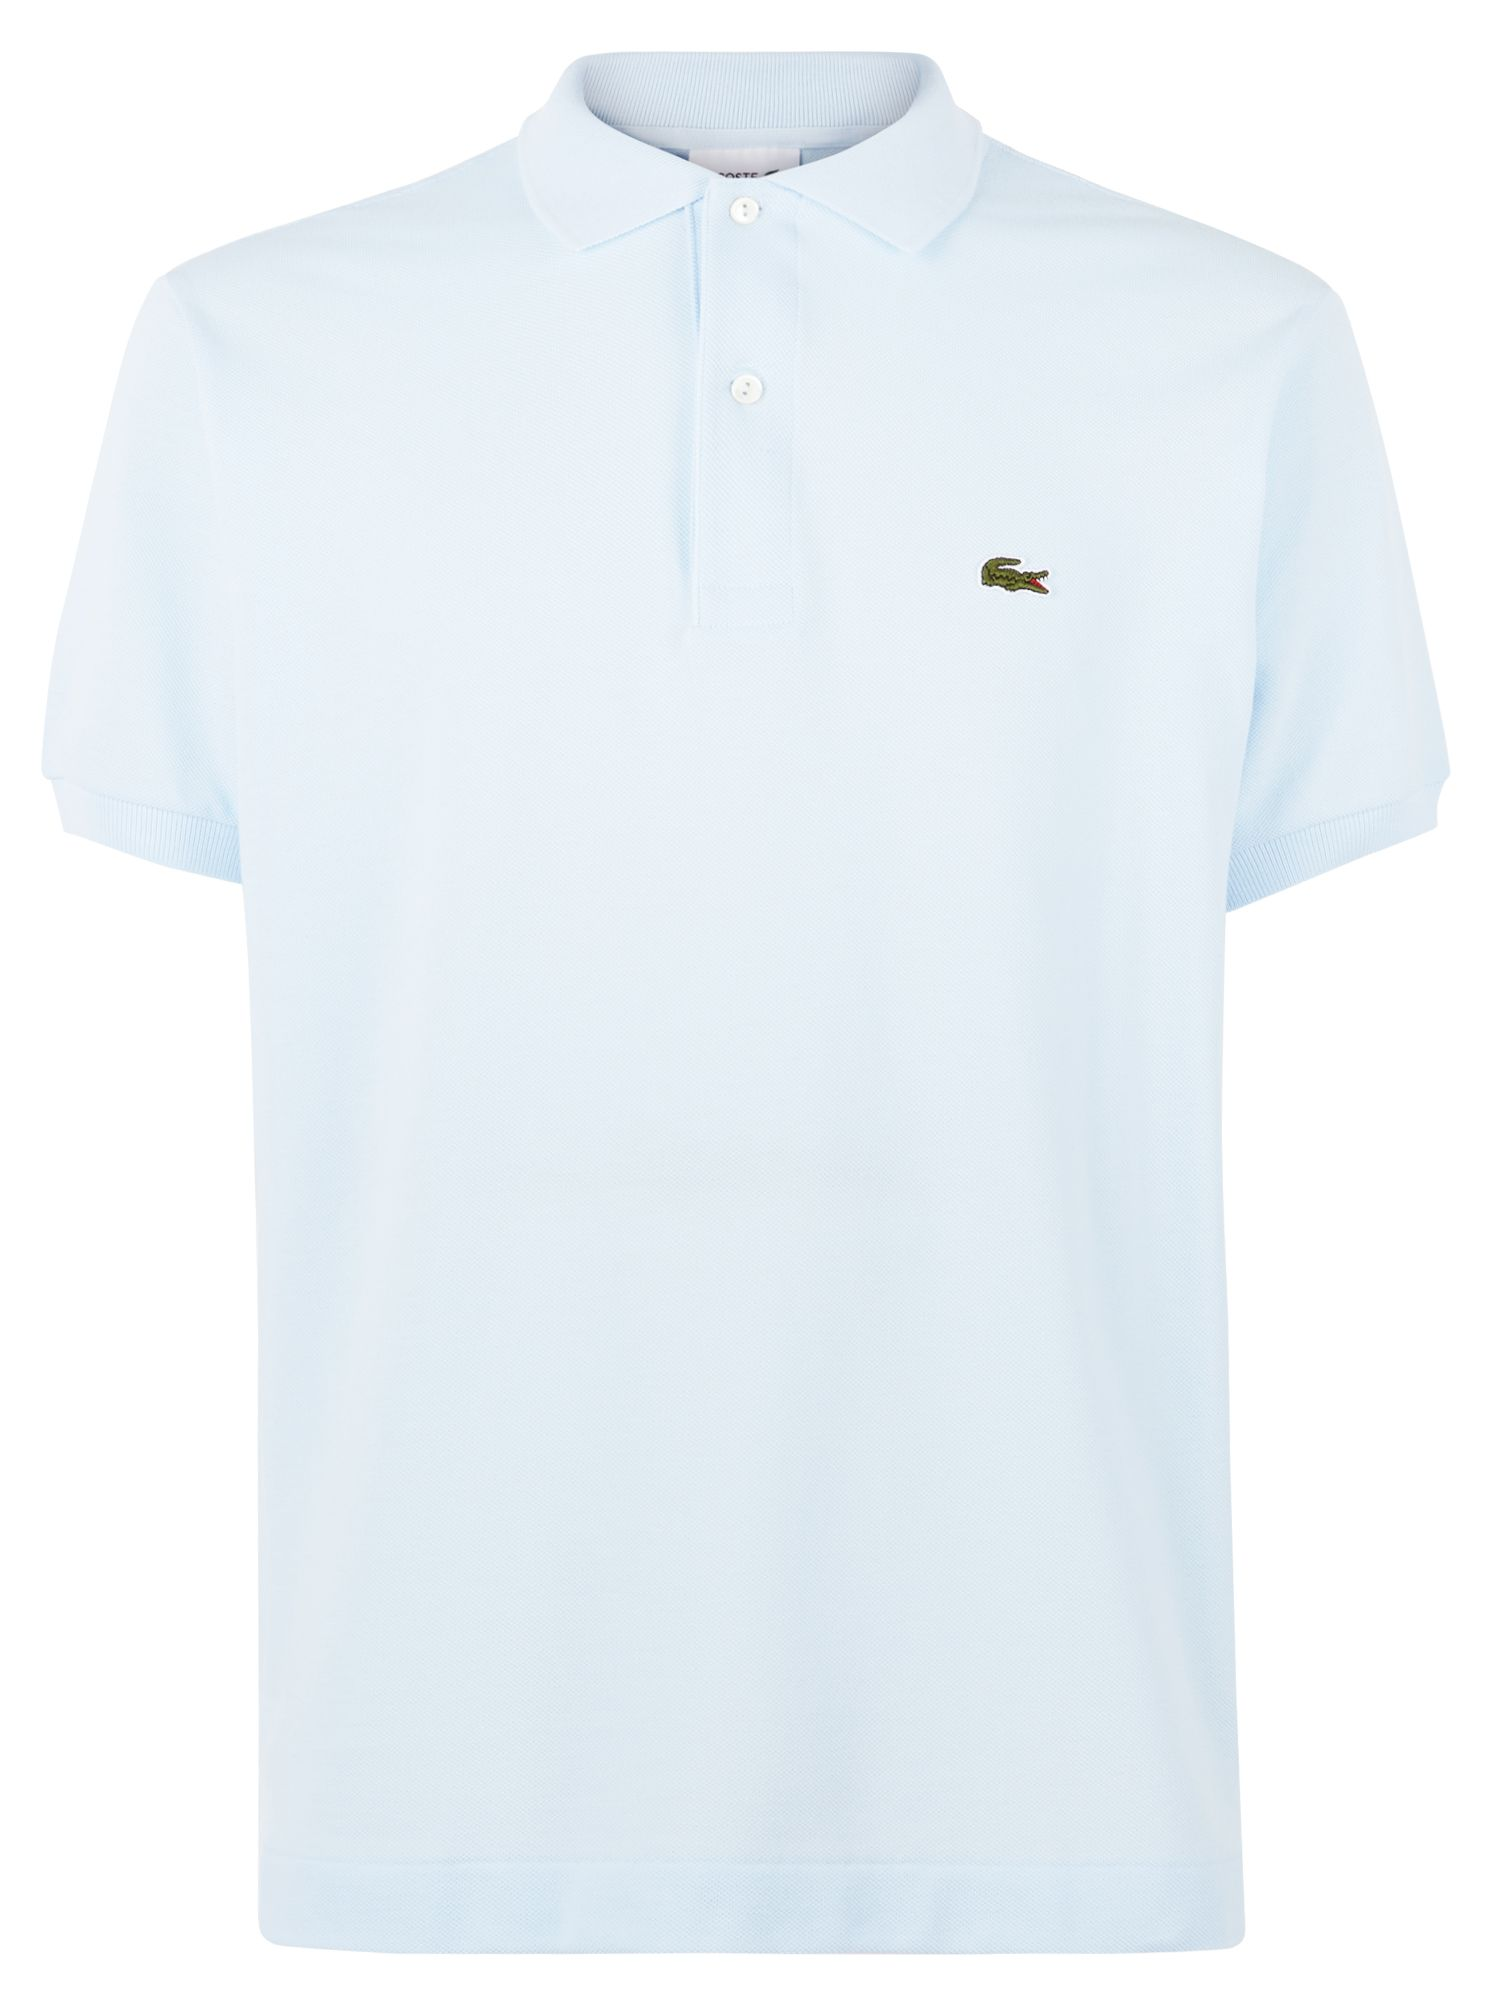 Men's Lacoste Slim Fit Polo in Pique, Blue